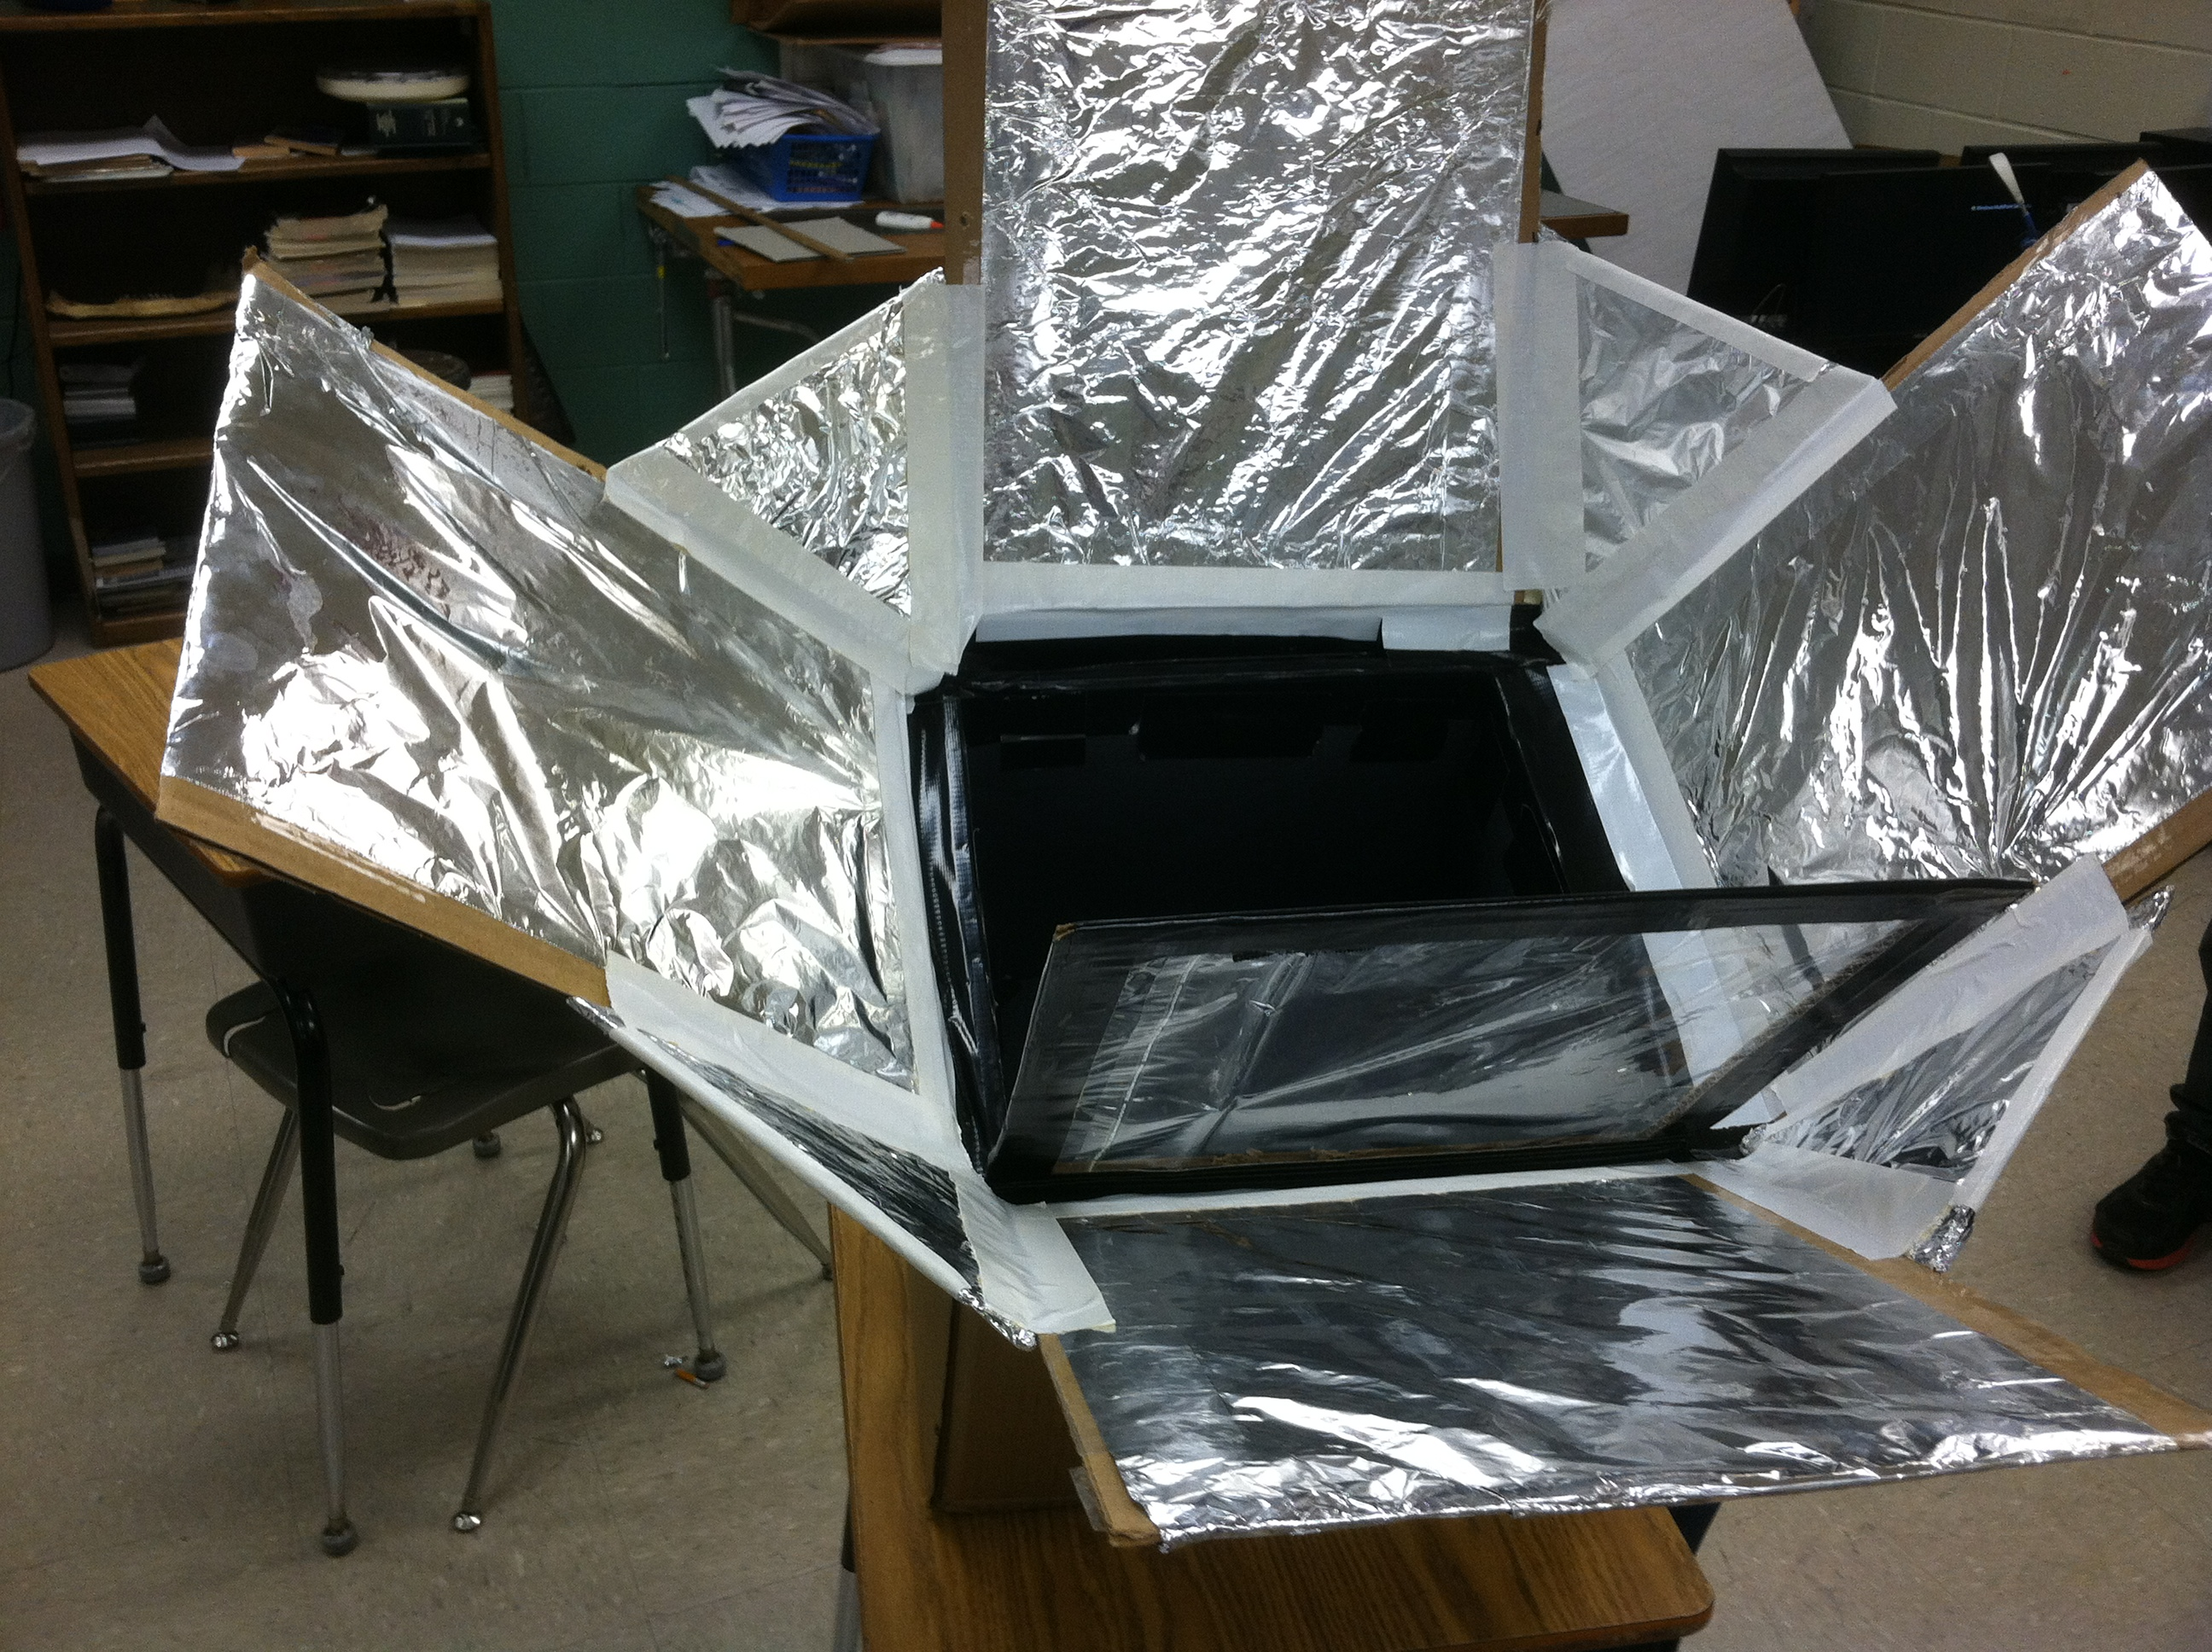 Homemade Solar Oven For Hot Dog